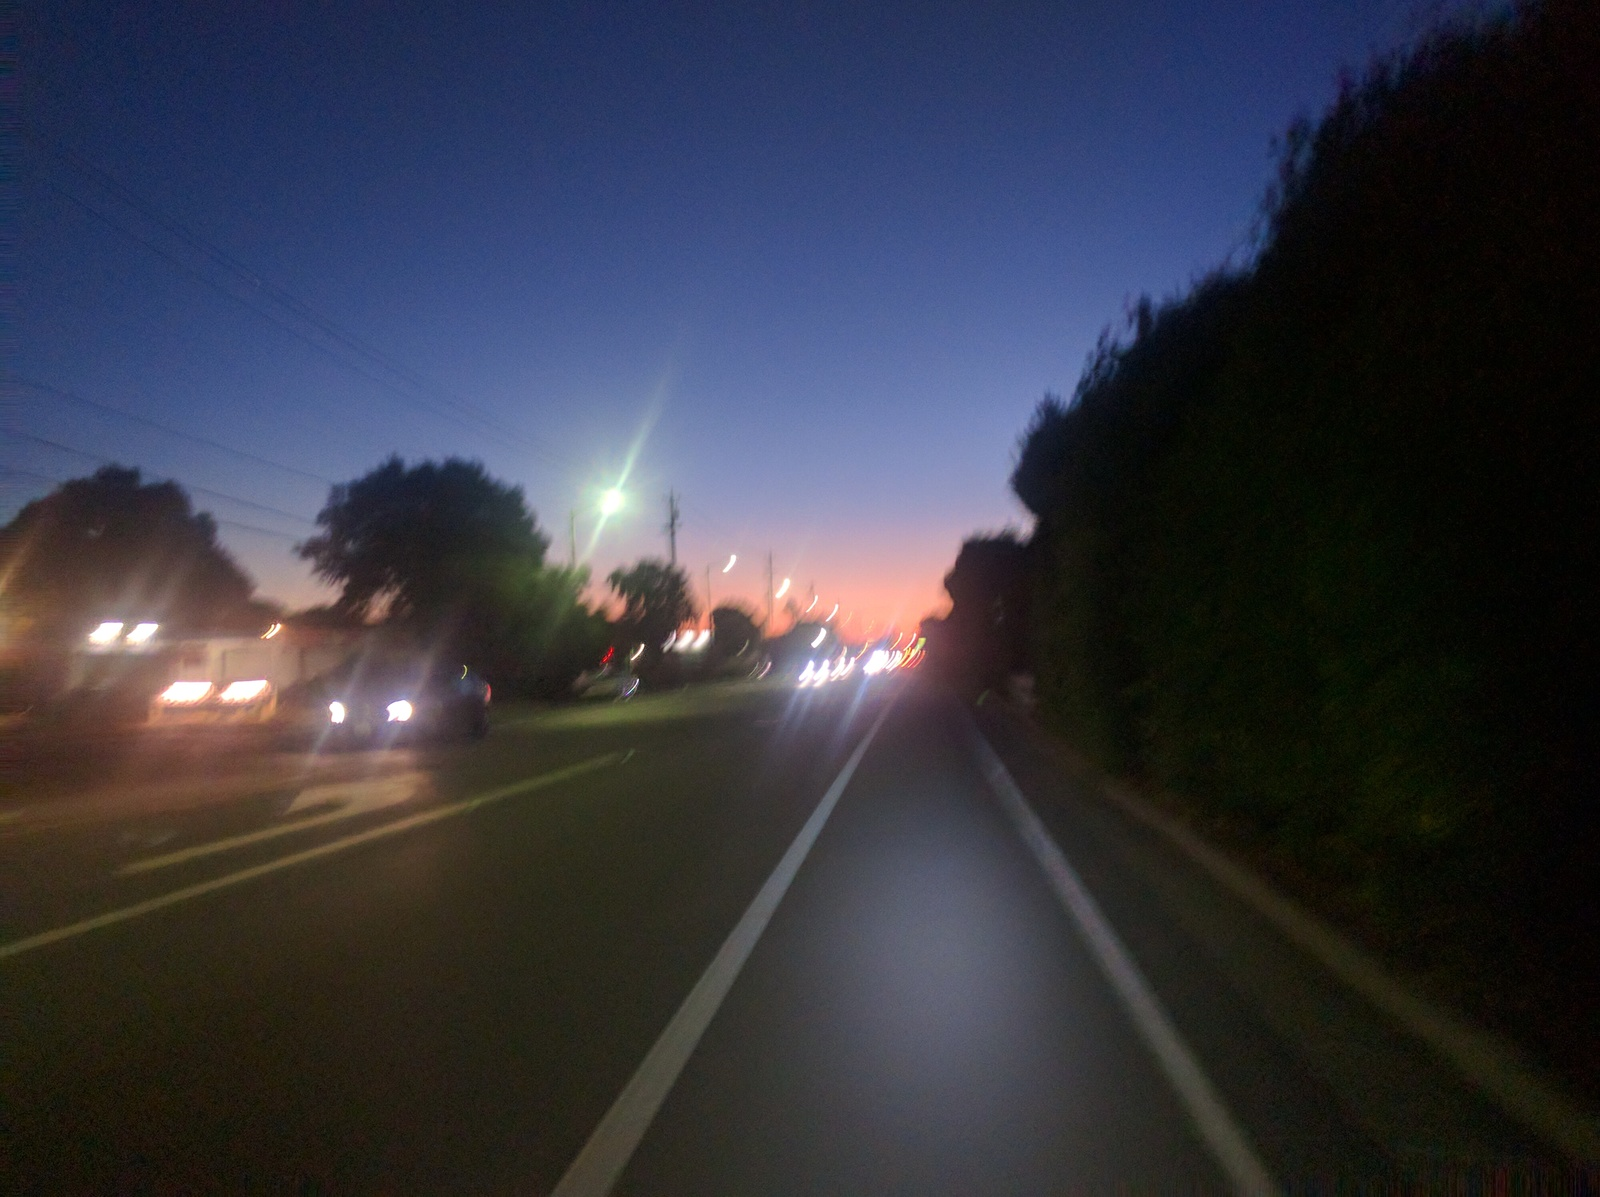 Evelyn Ave bike lane, blurry, as the sun sets